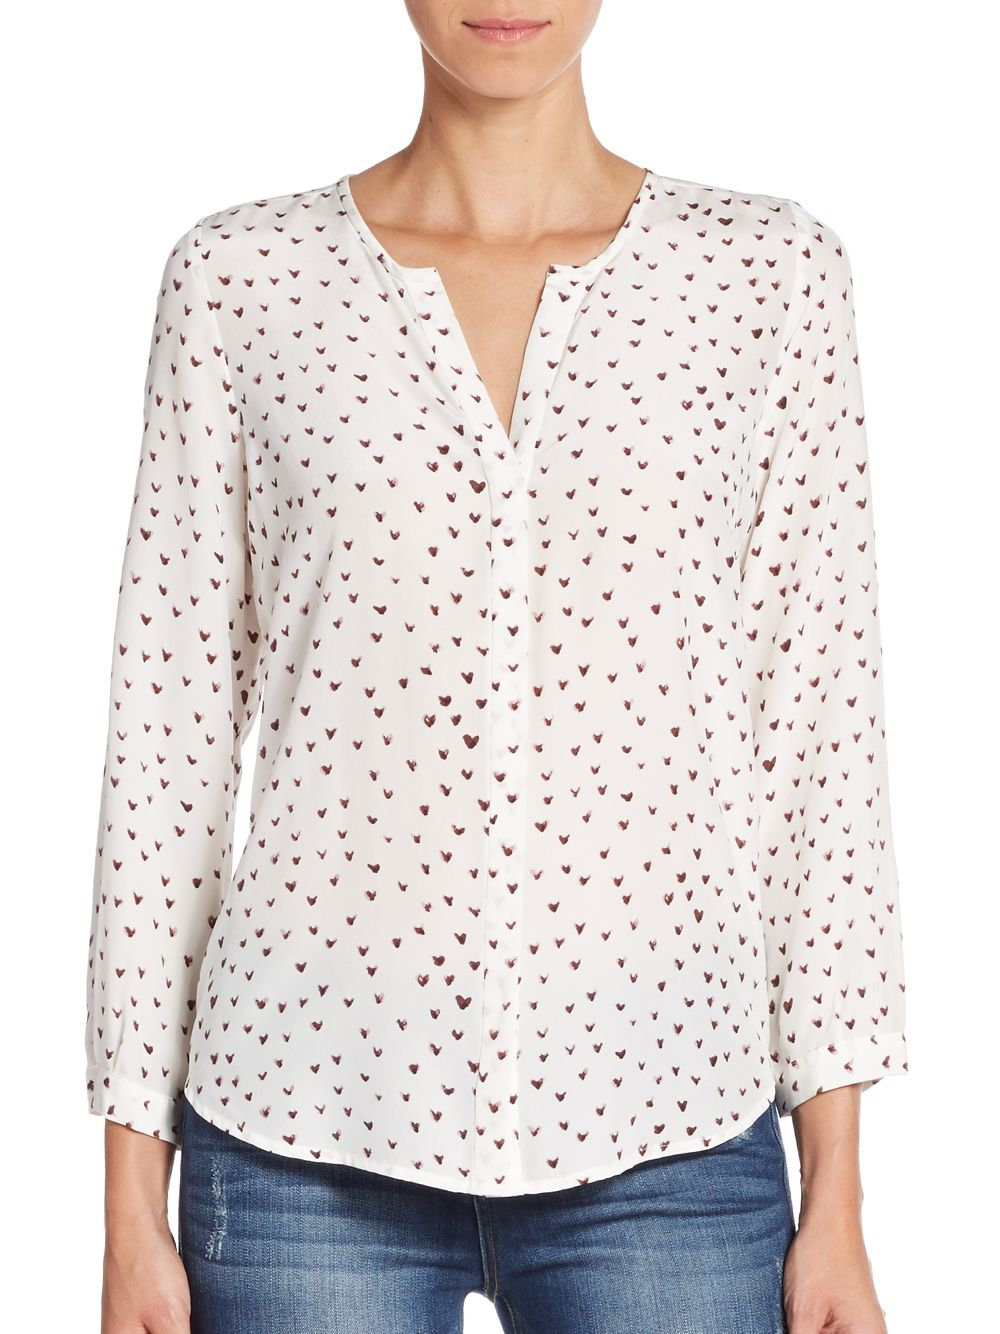 521ff52f6f531 Lyst - Joie Purine Heart-print Silk Blouse in White